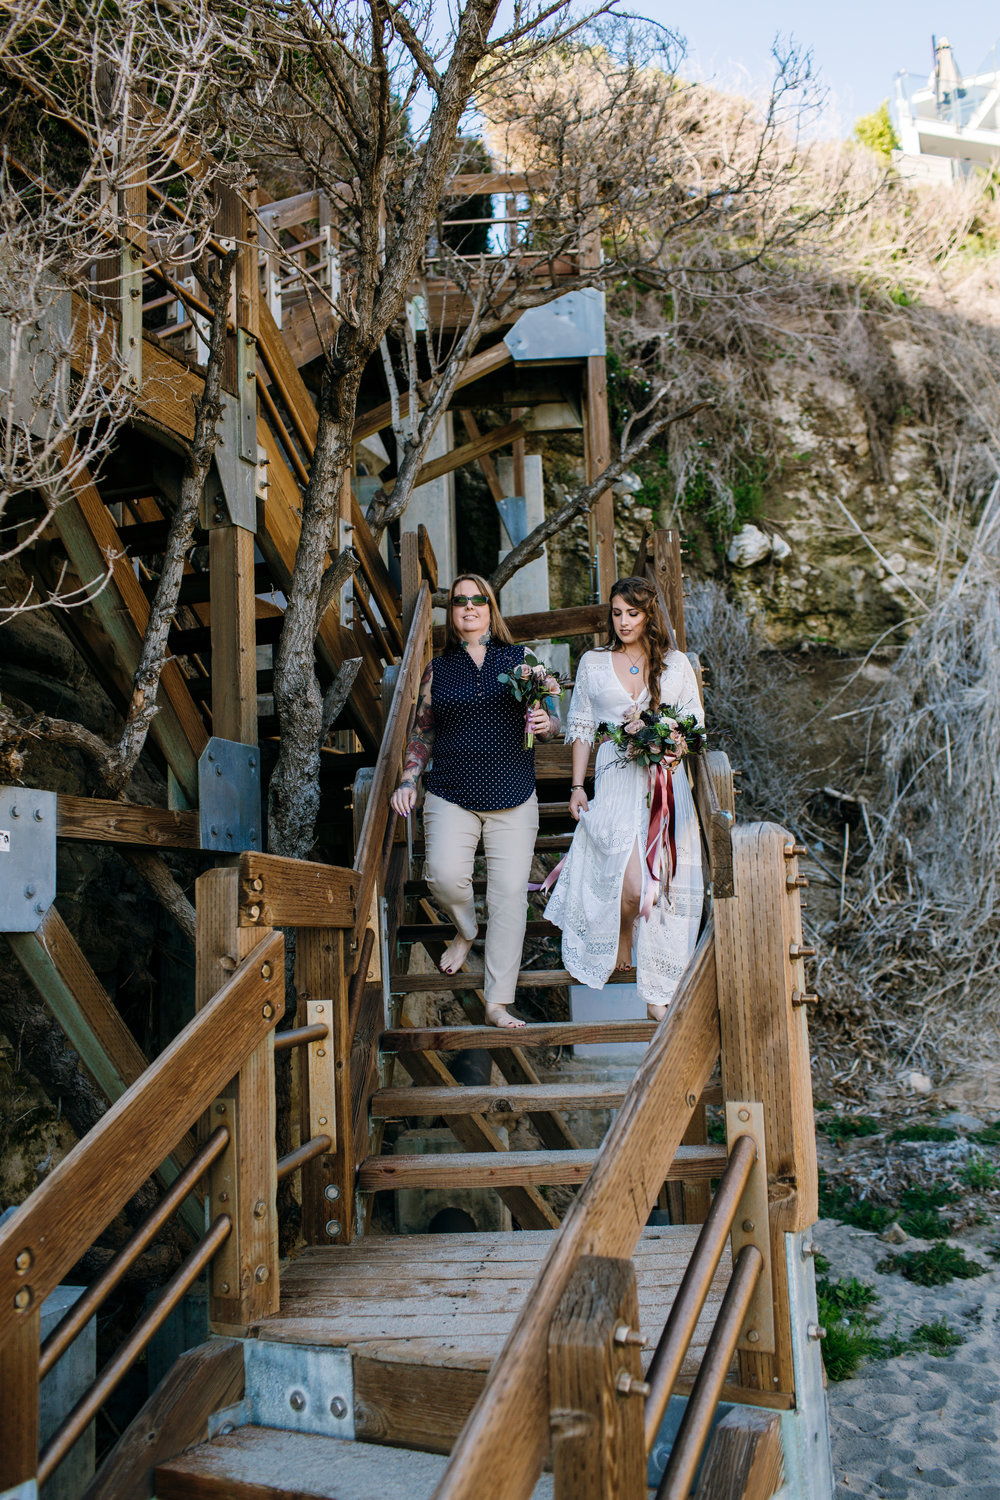 KaraNixonWeddings-LagunaBeach-Tablerock-Elopement-5.jpg